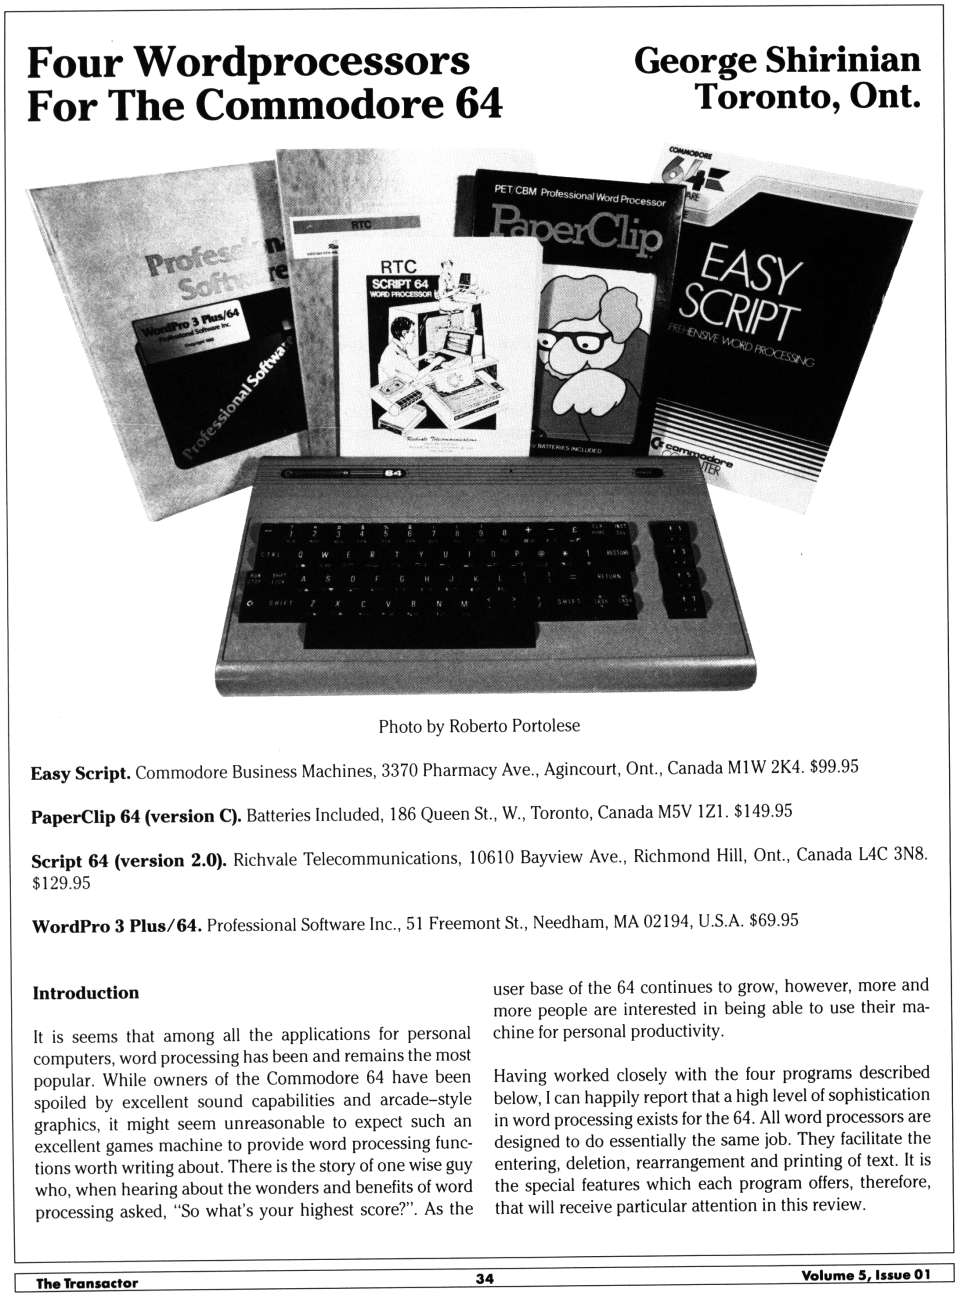 [Four Wordprocessors for the Commodore 64 (2/10)]